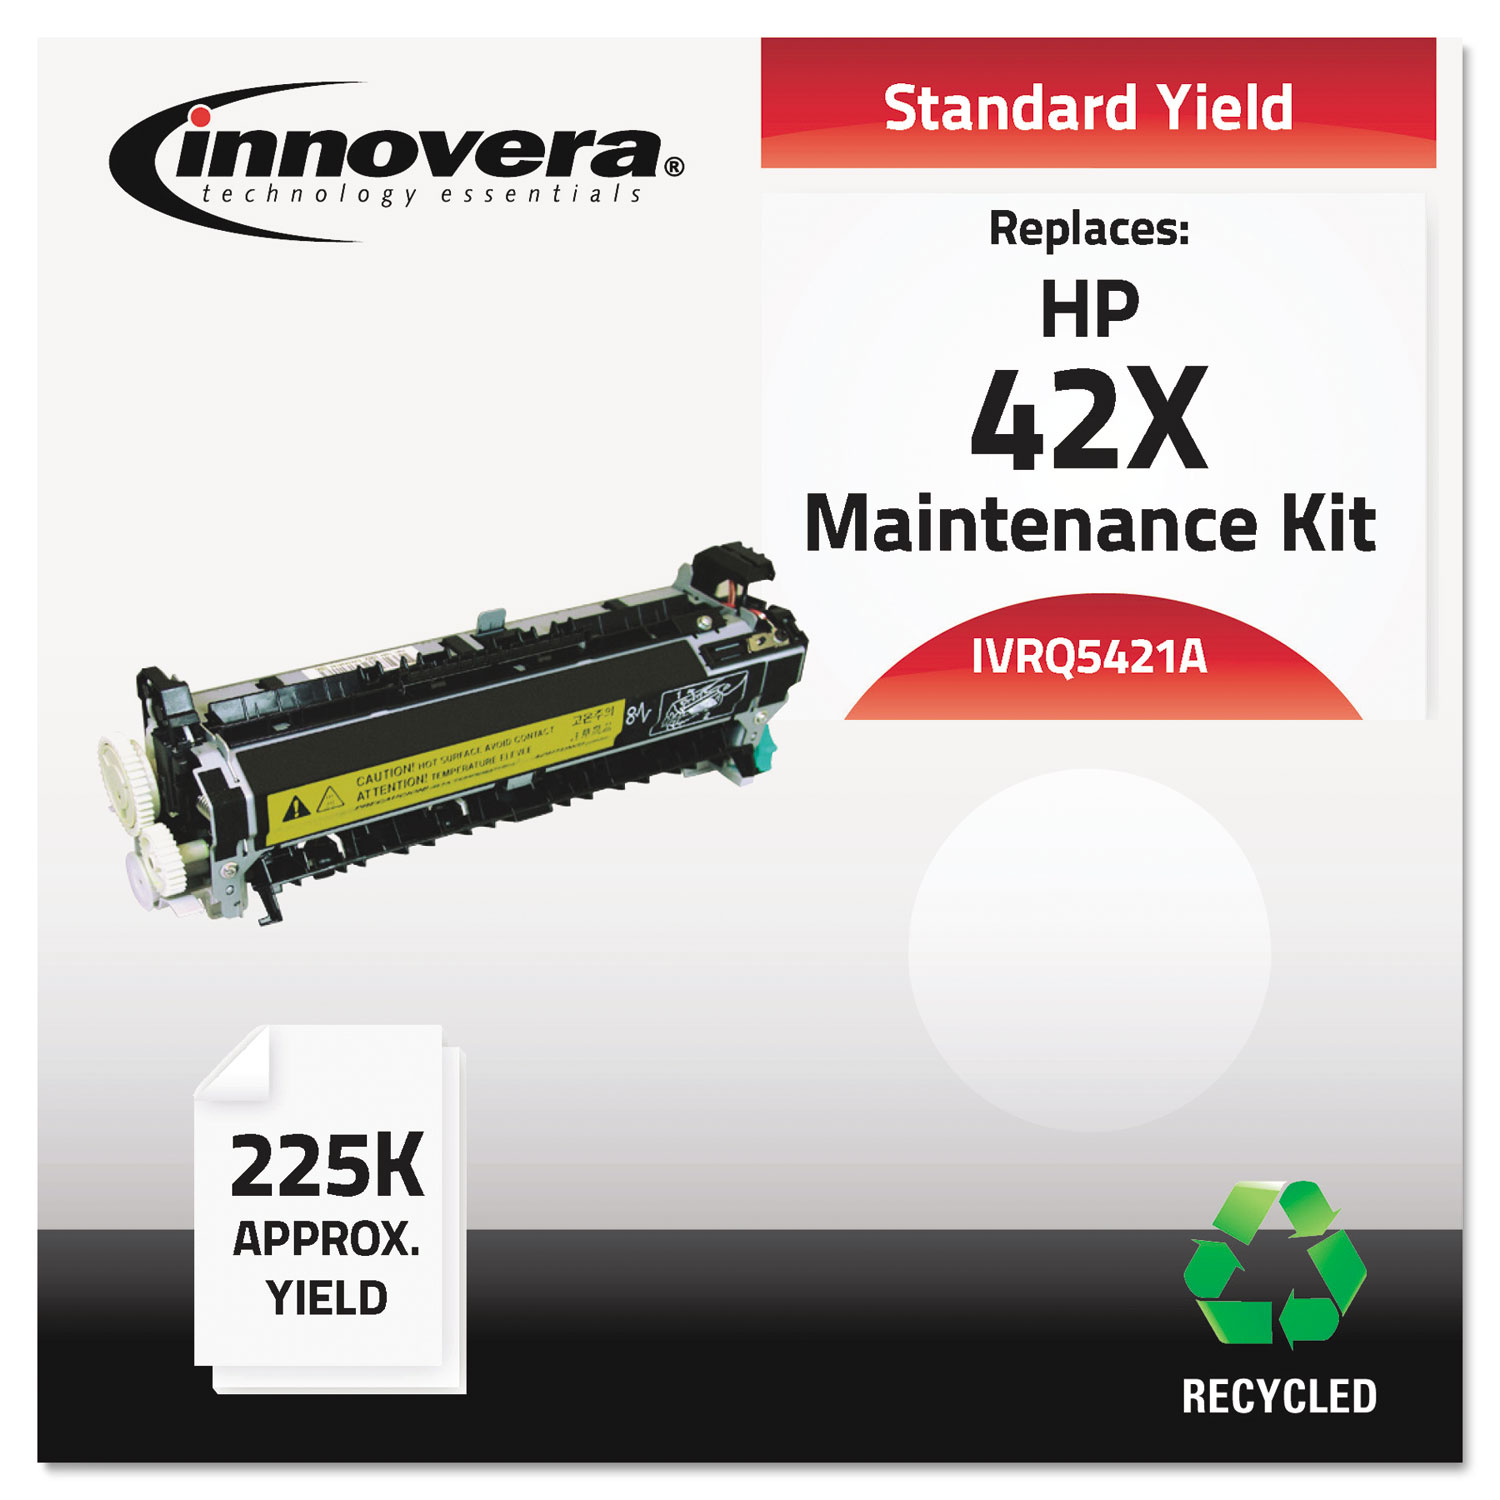 Remanufactured Q5421-67903 (4250) Maintenance Kit, 225,000 Page-Yield IVRQ5421A